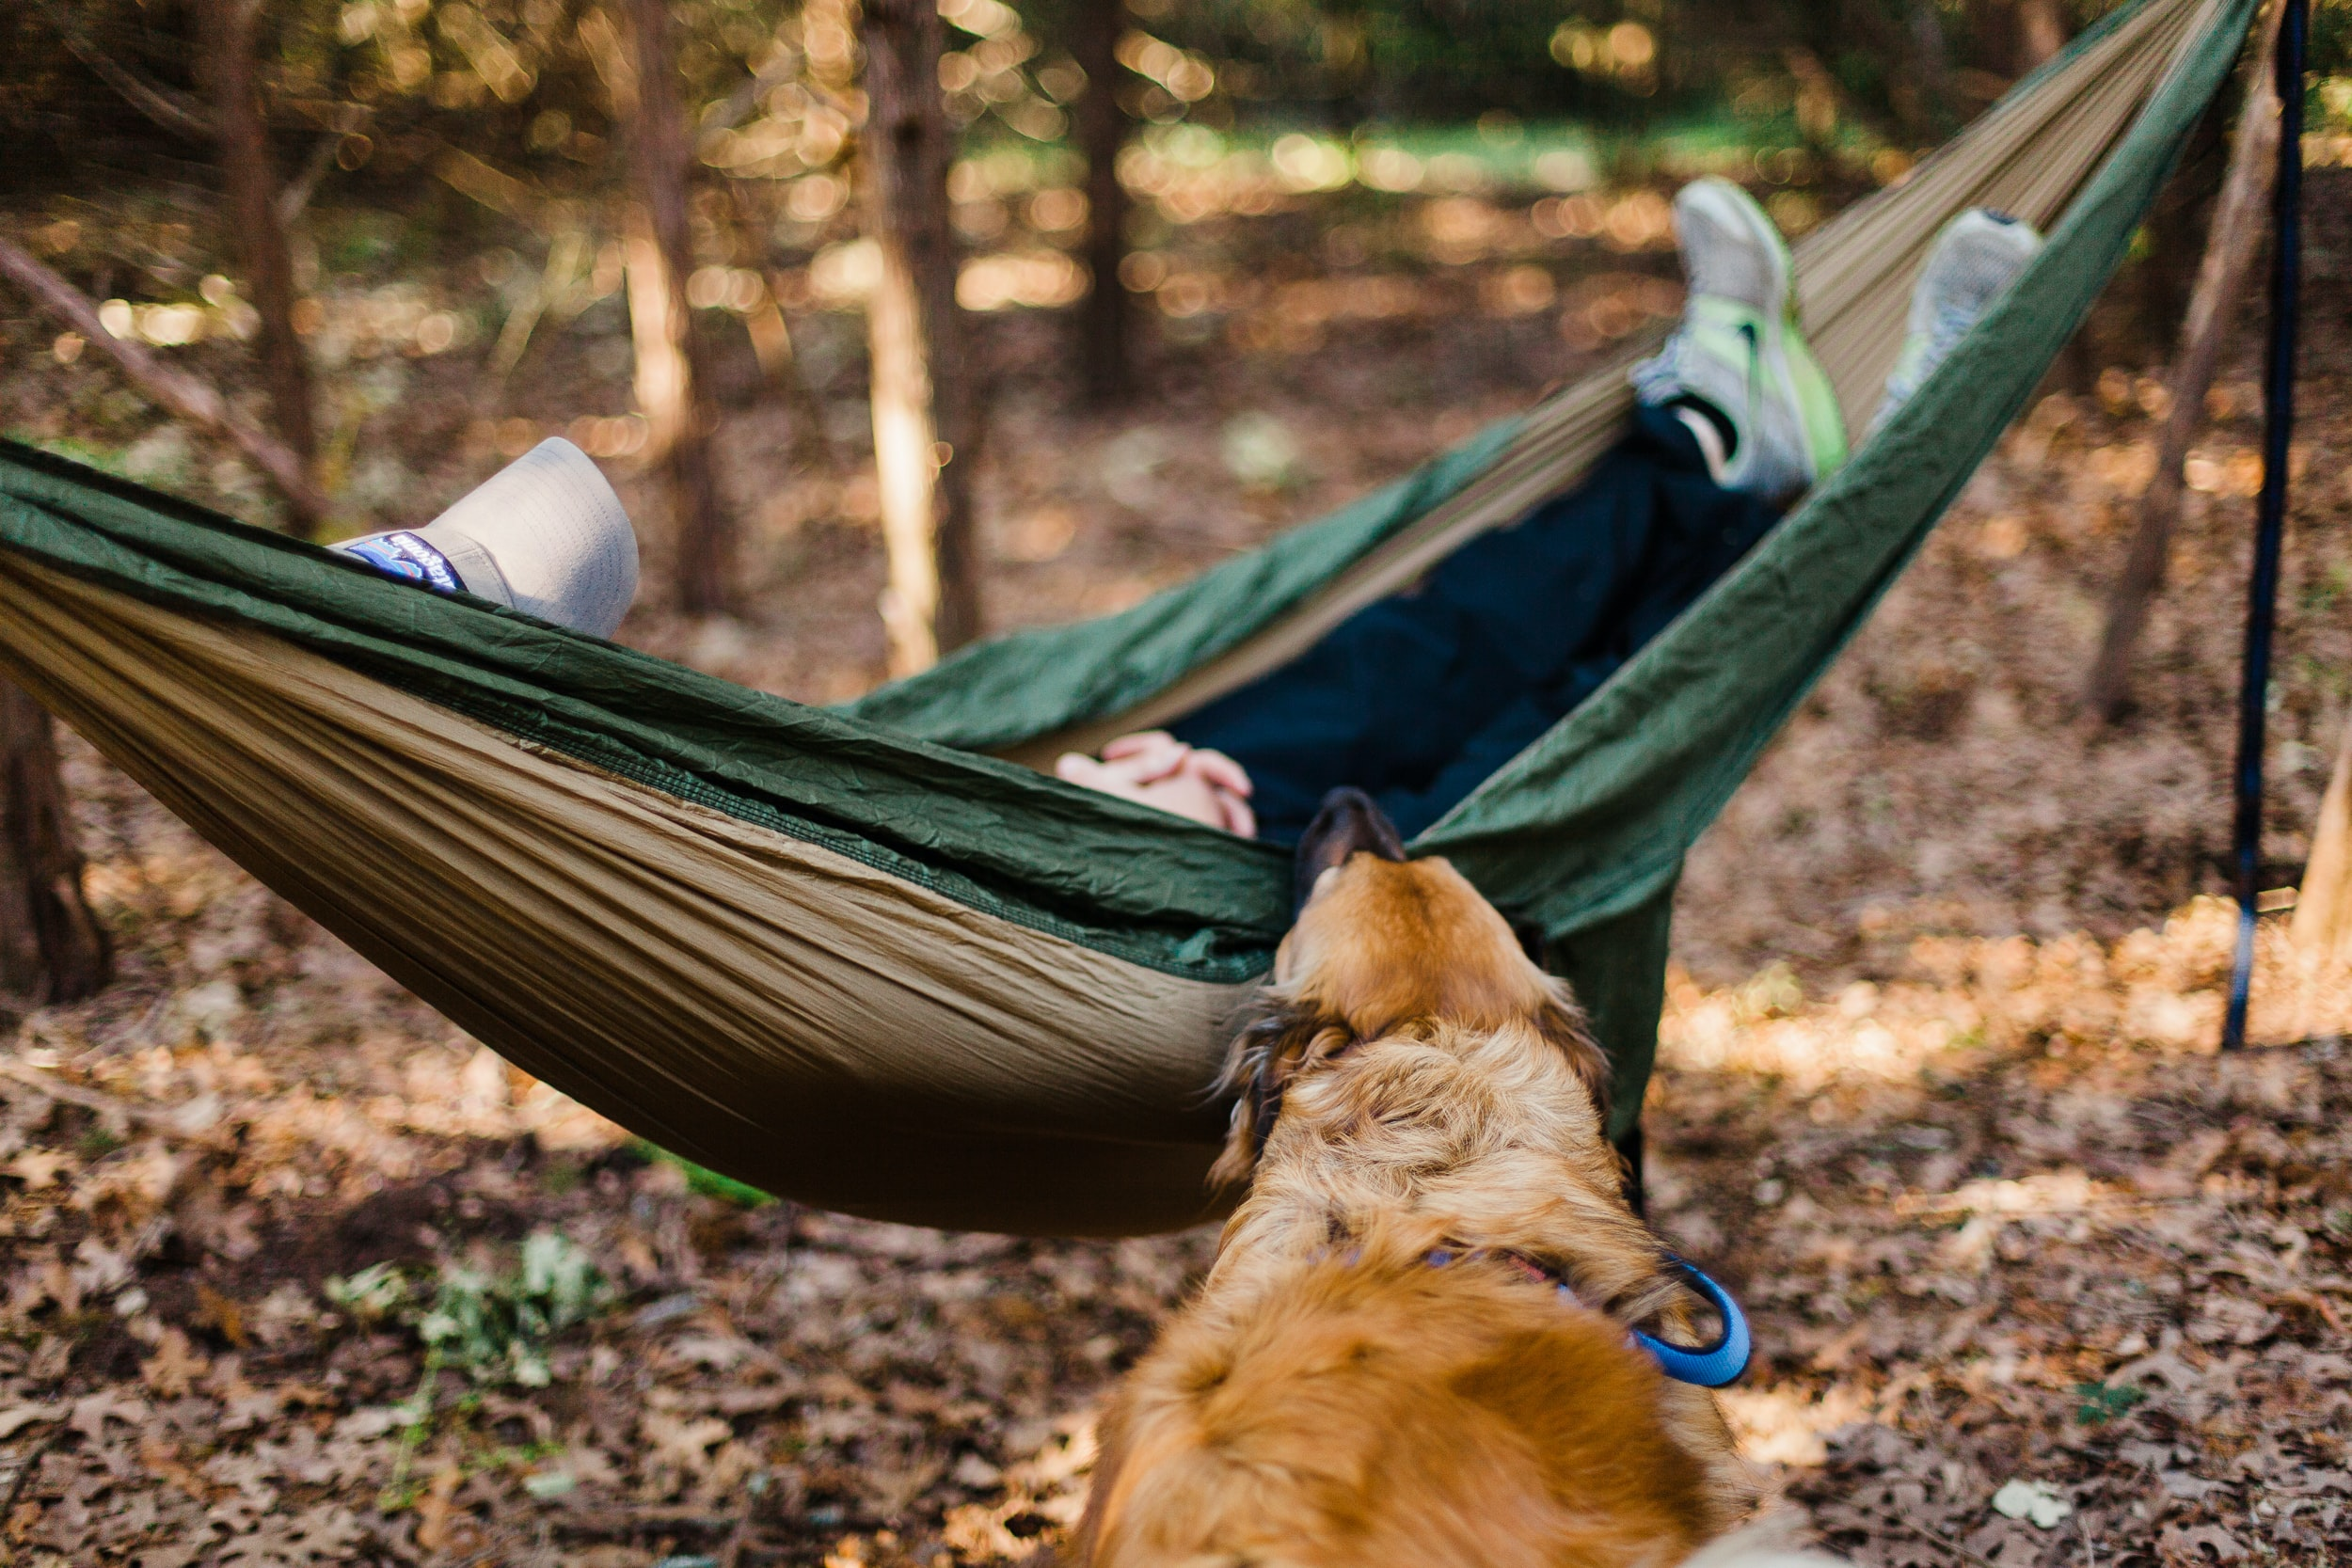 dog biting hammock with person sleeping